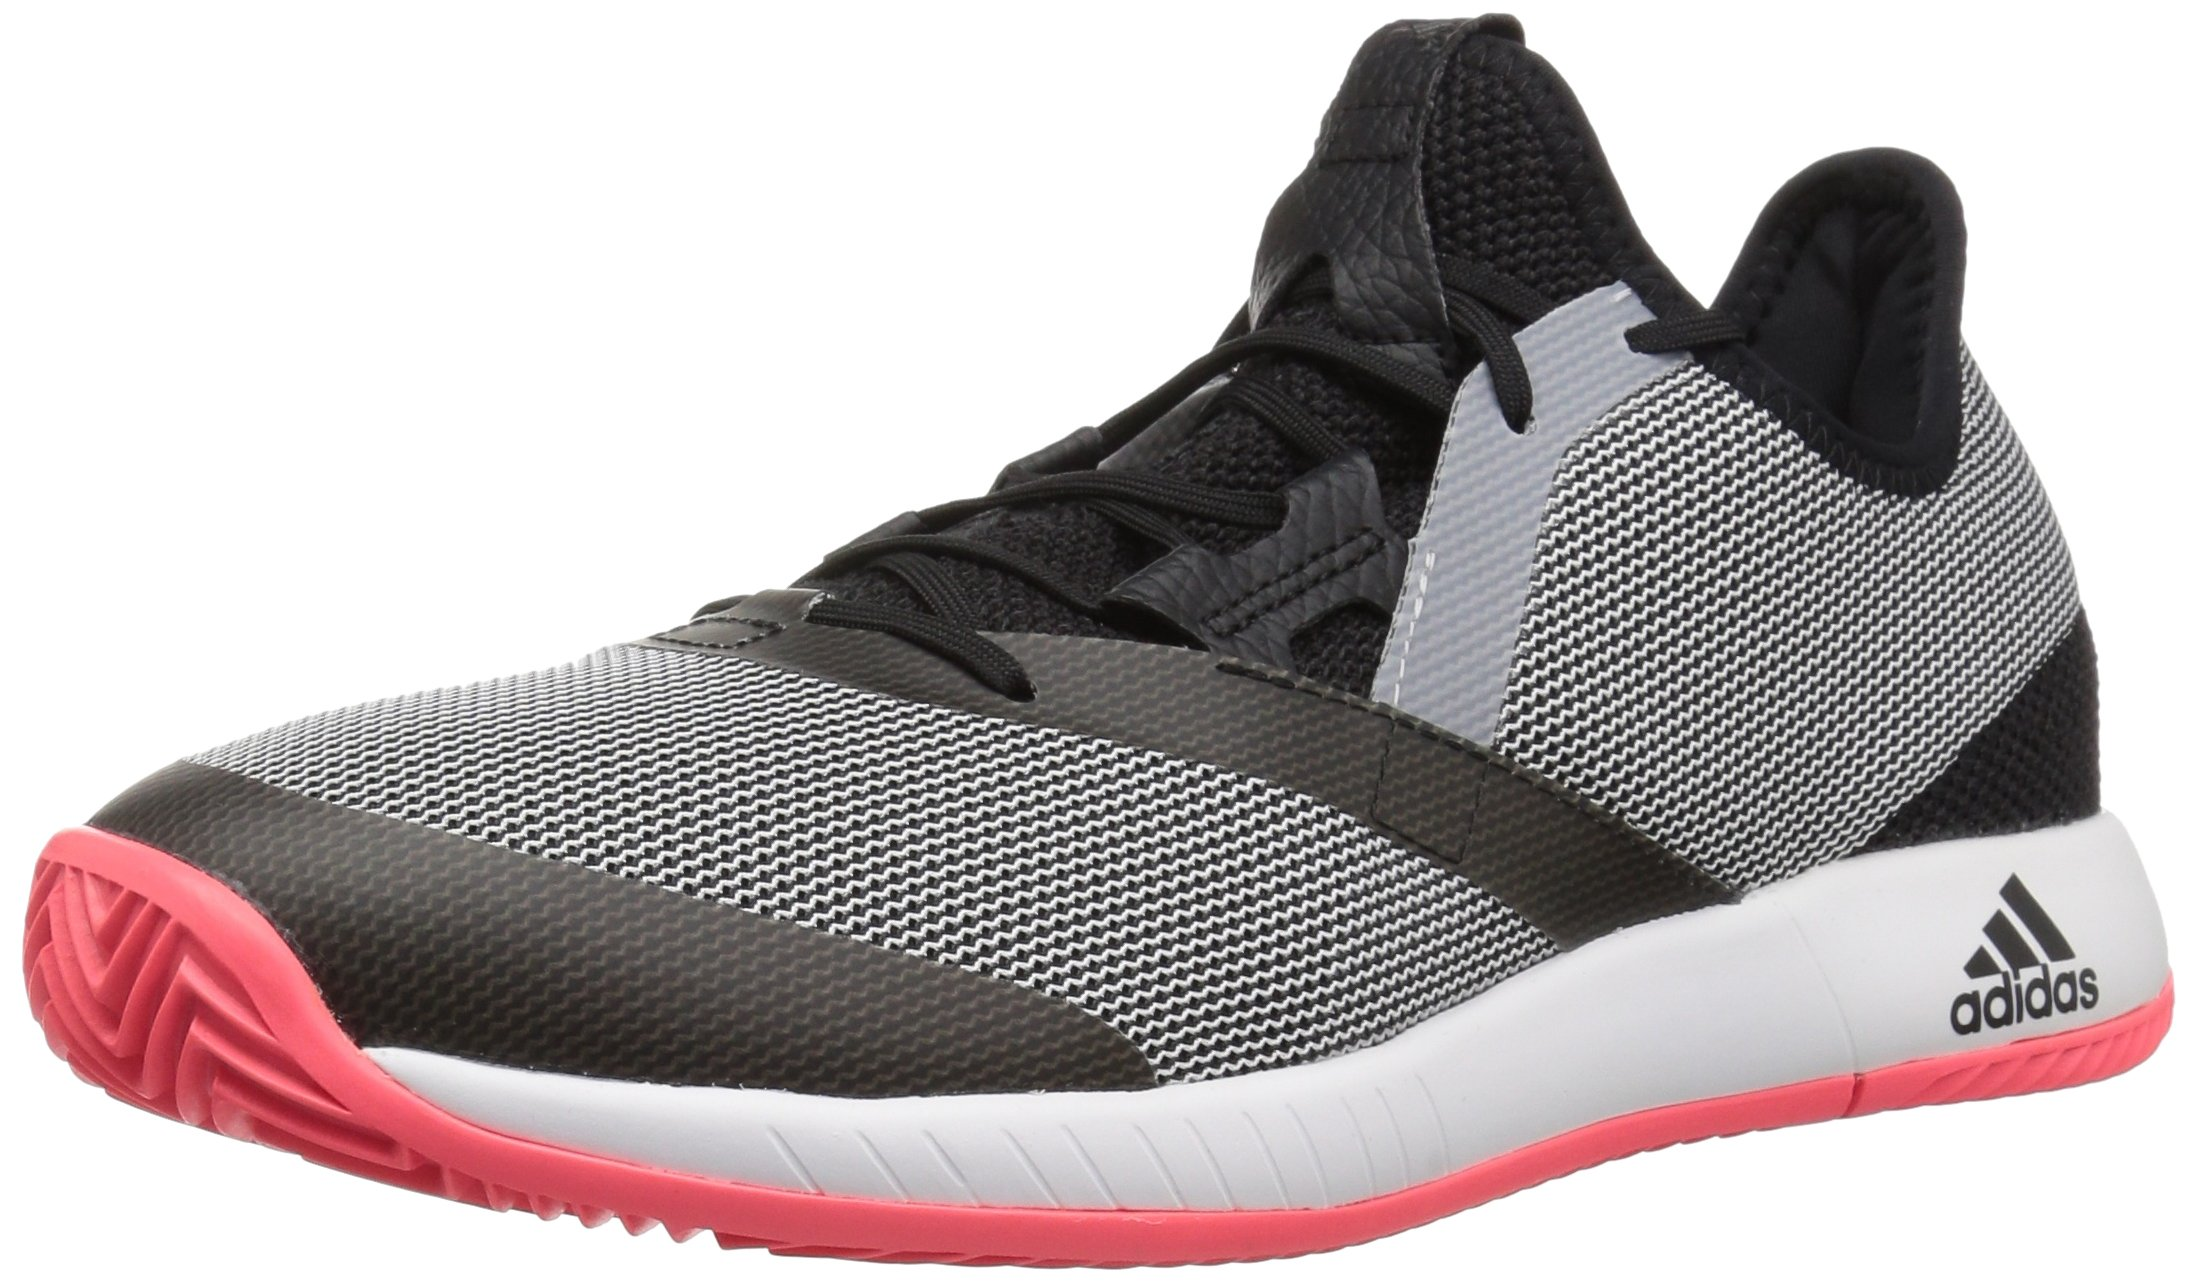 adidas Men's Adizero Defiant Bounce Tennis Shoe, Black/White/Flash red, 7 M US